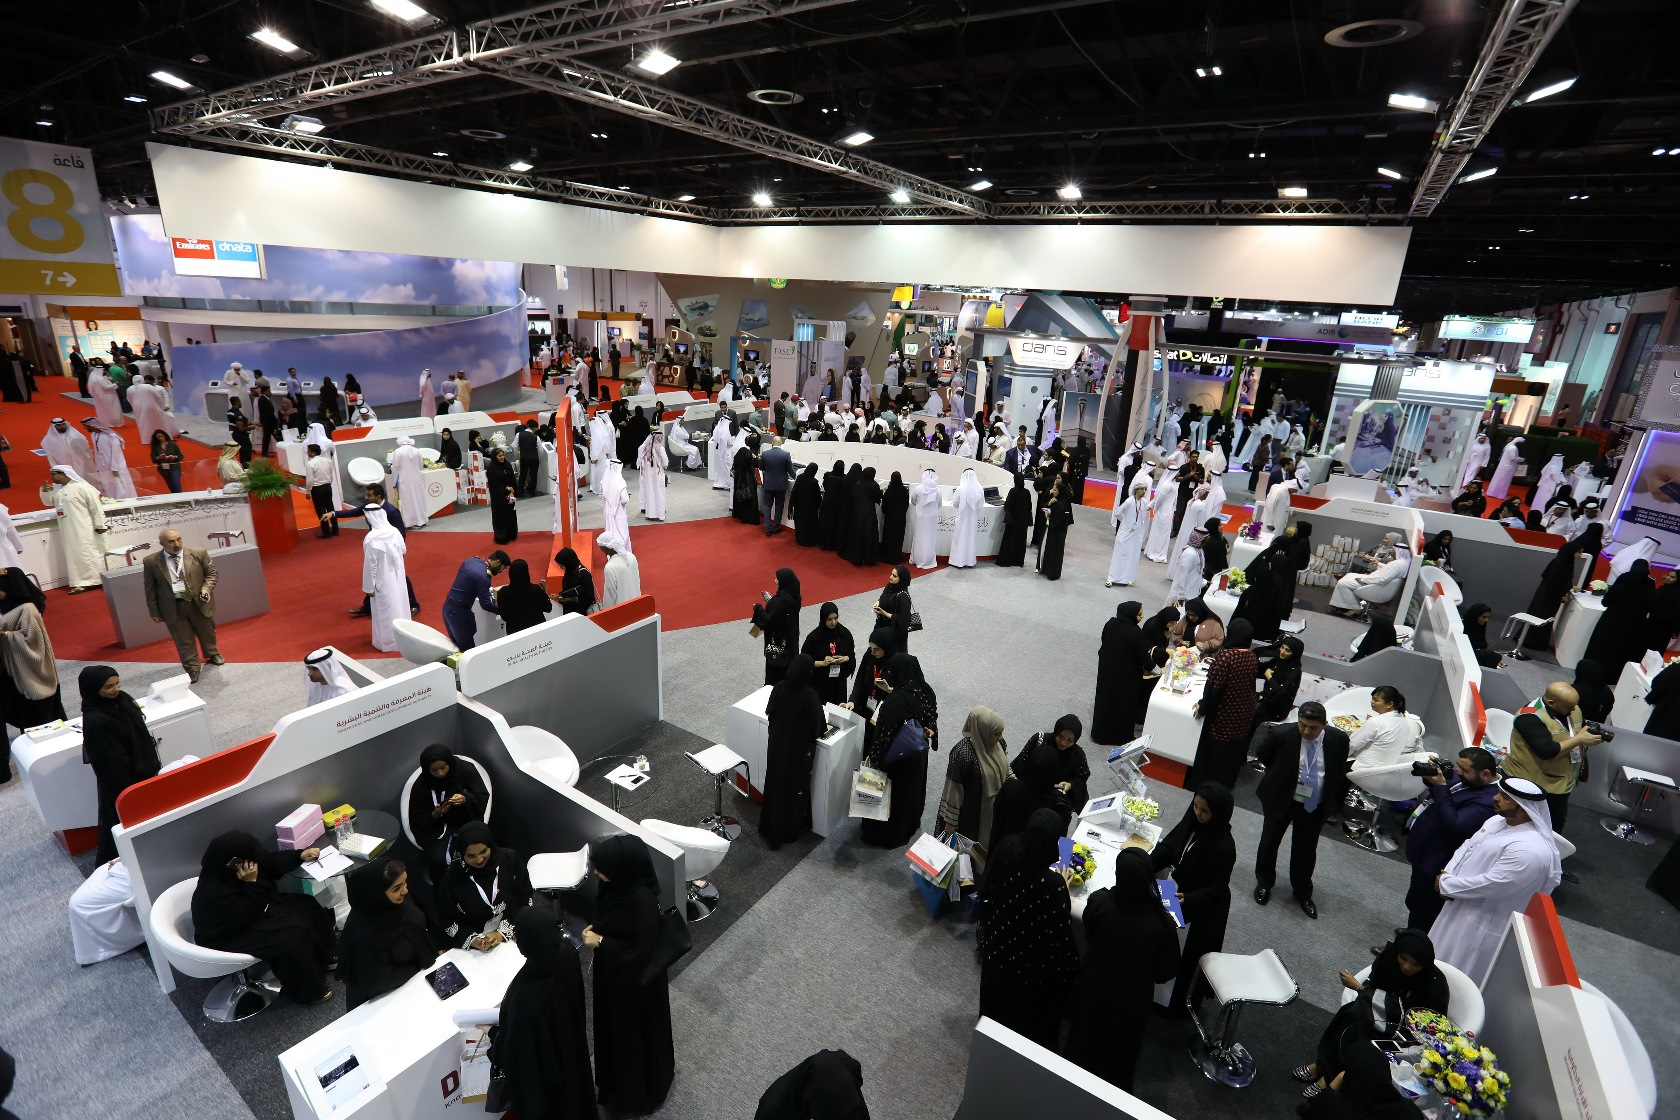 Visiting Careers UAE is a proactive way of finding out the latest information ranging from job opportunities and on the spot hiring to advanced study & training .